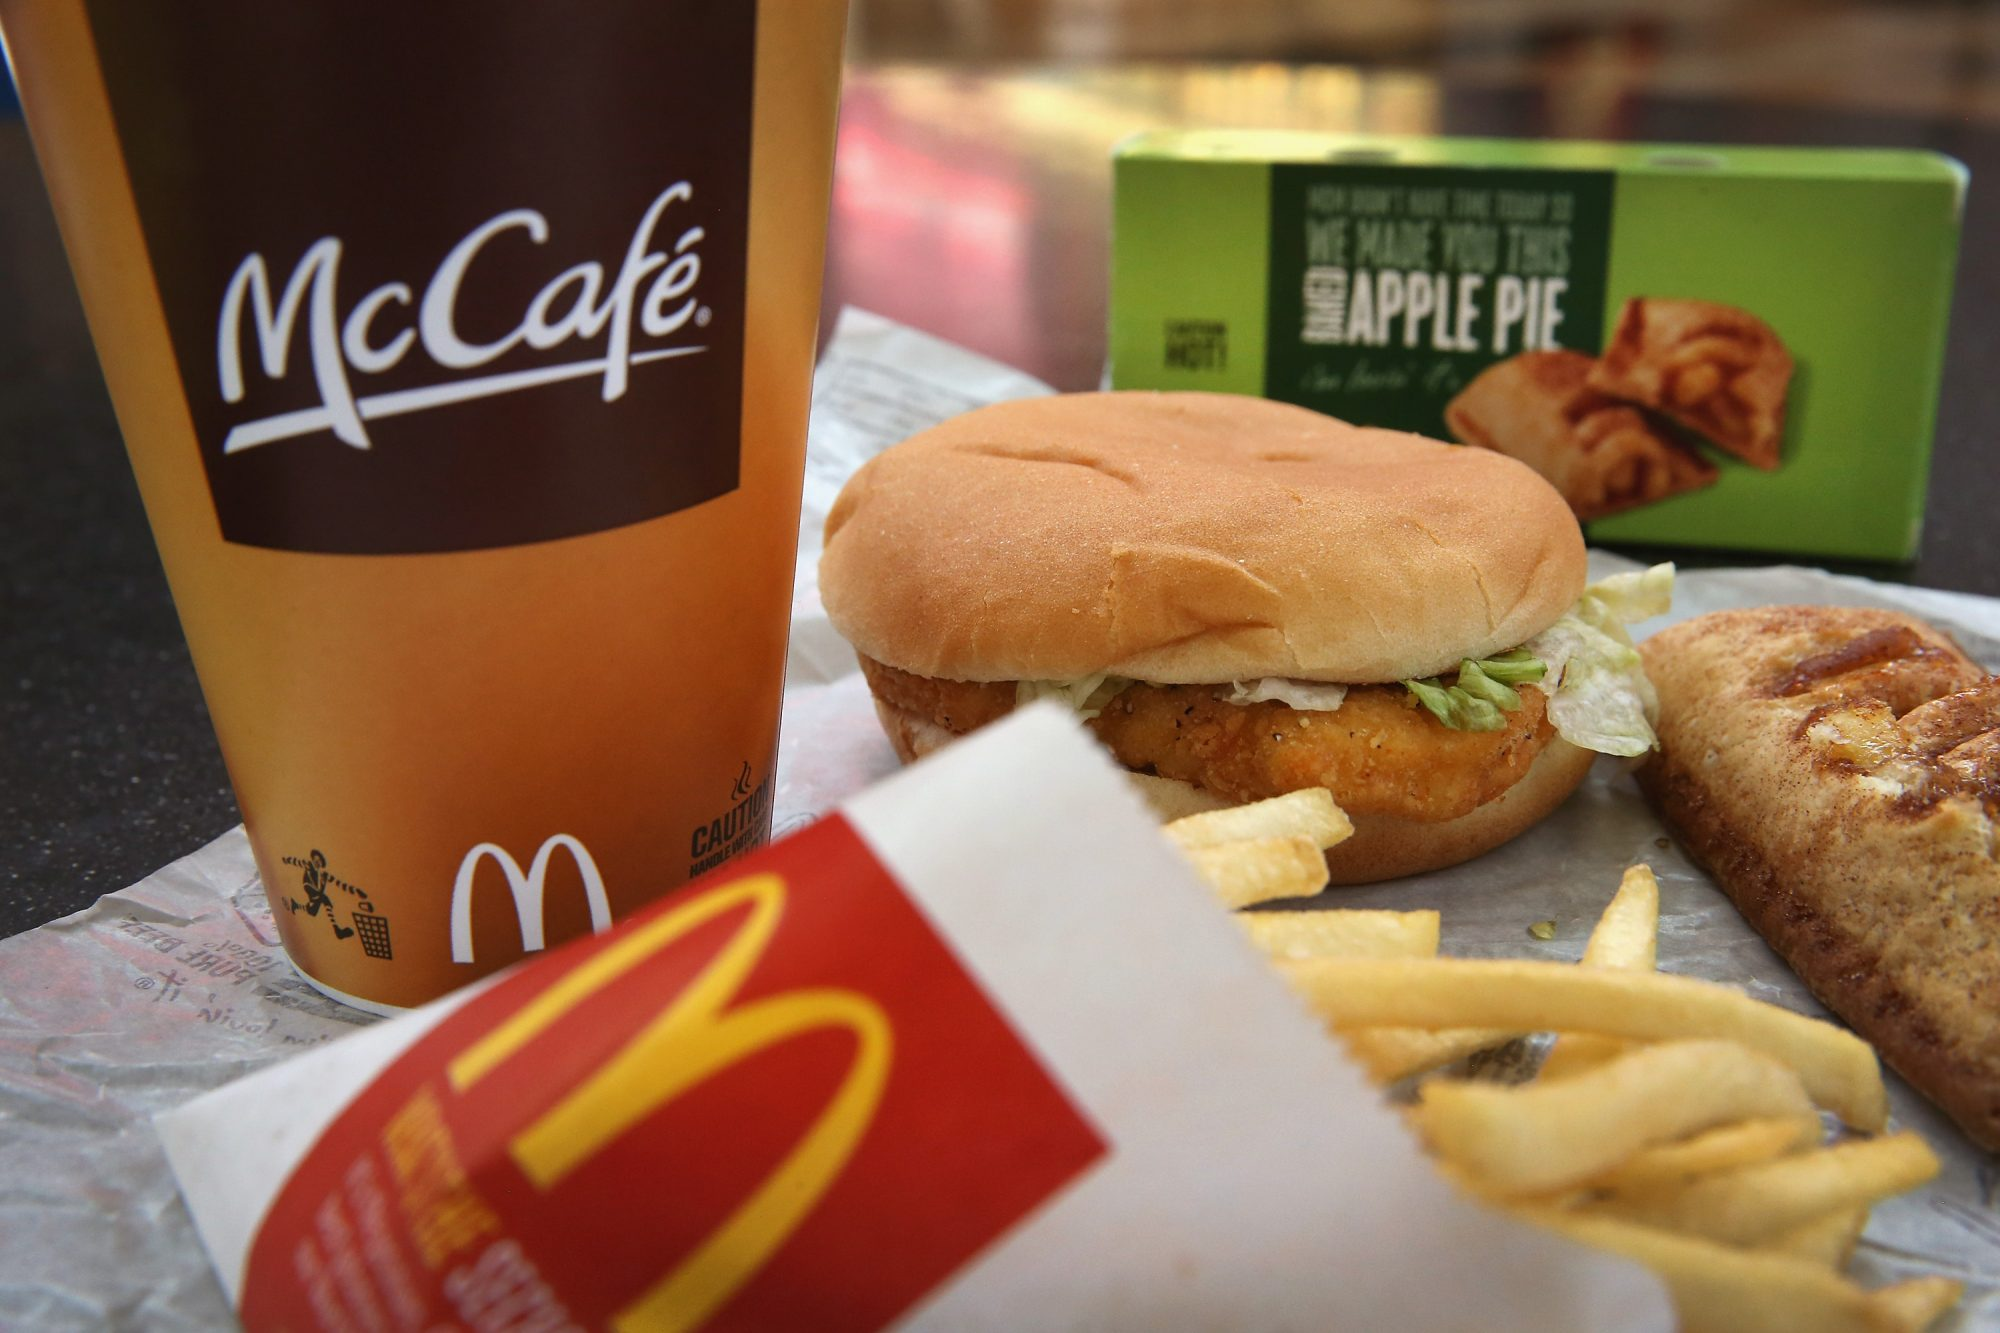 McDonald's revives Dollar Menu name with $1, $2 and $3 items